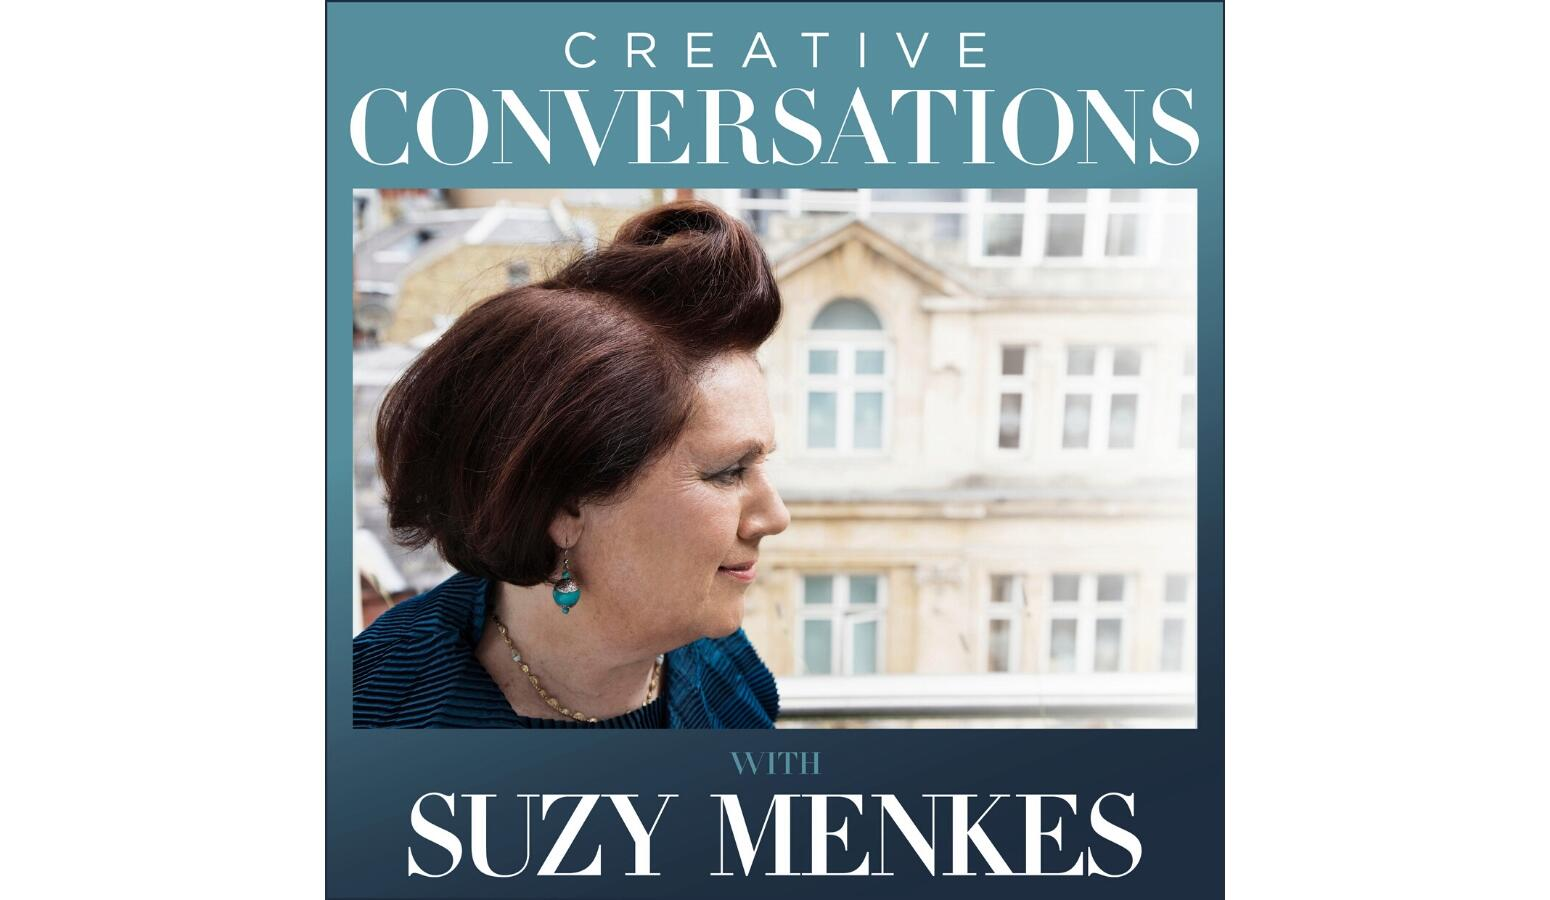 Creative Conversations with Suzy Menkes